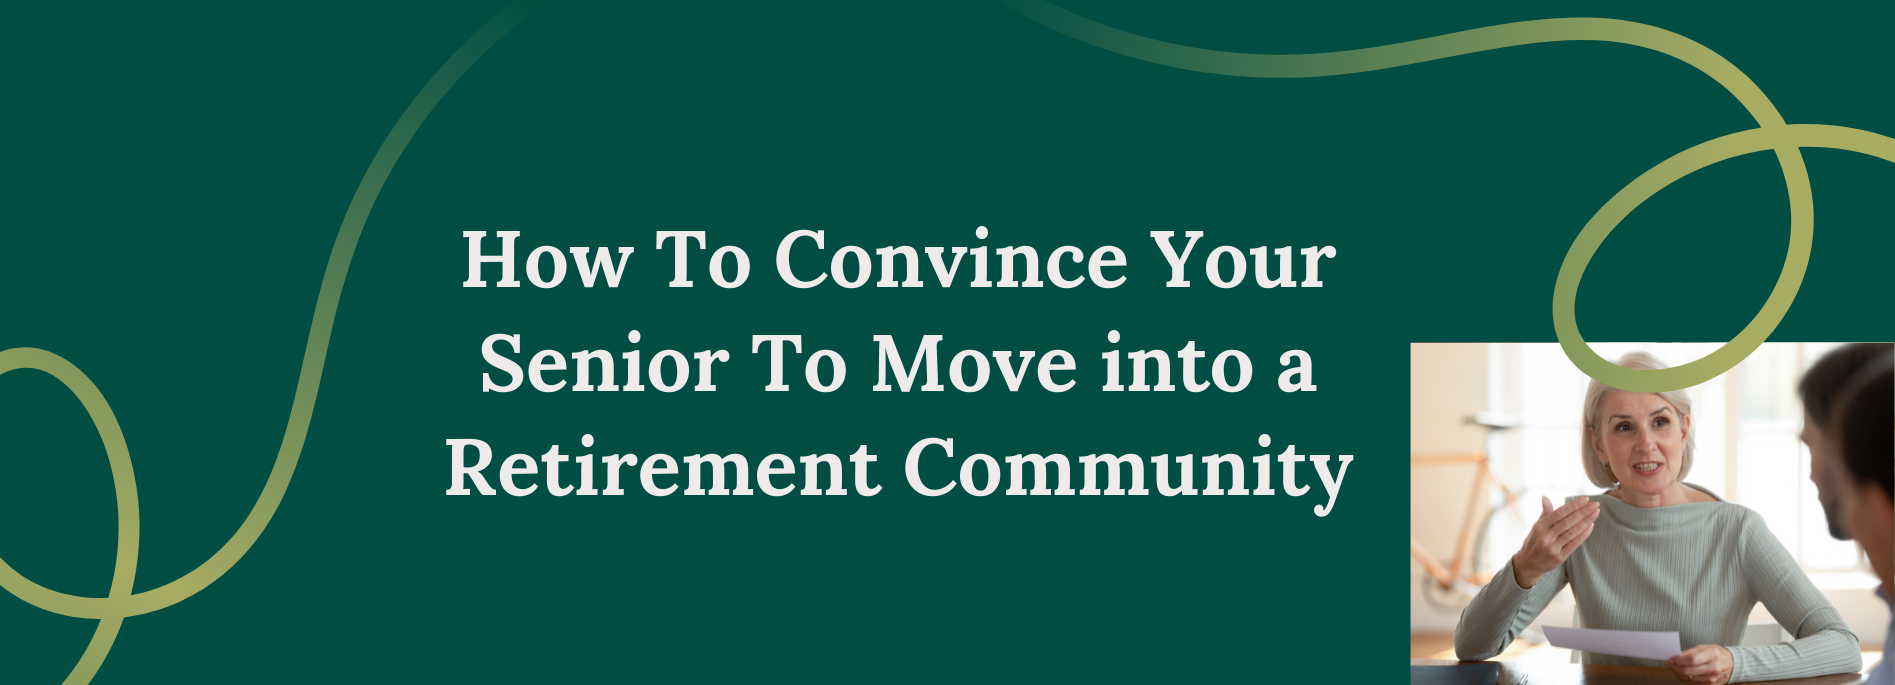 How To Convince Your Senior To Move into a Retirement Community